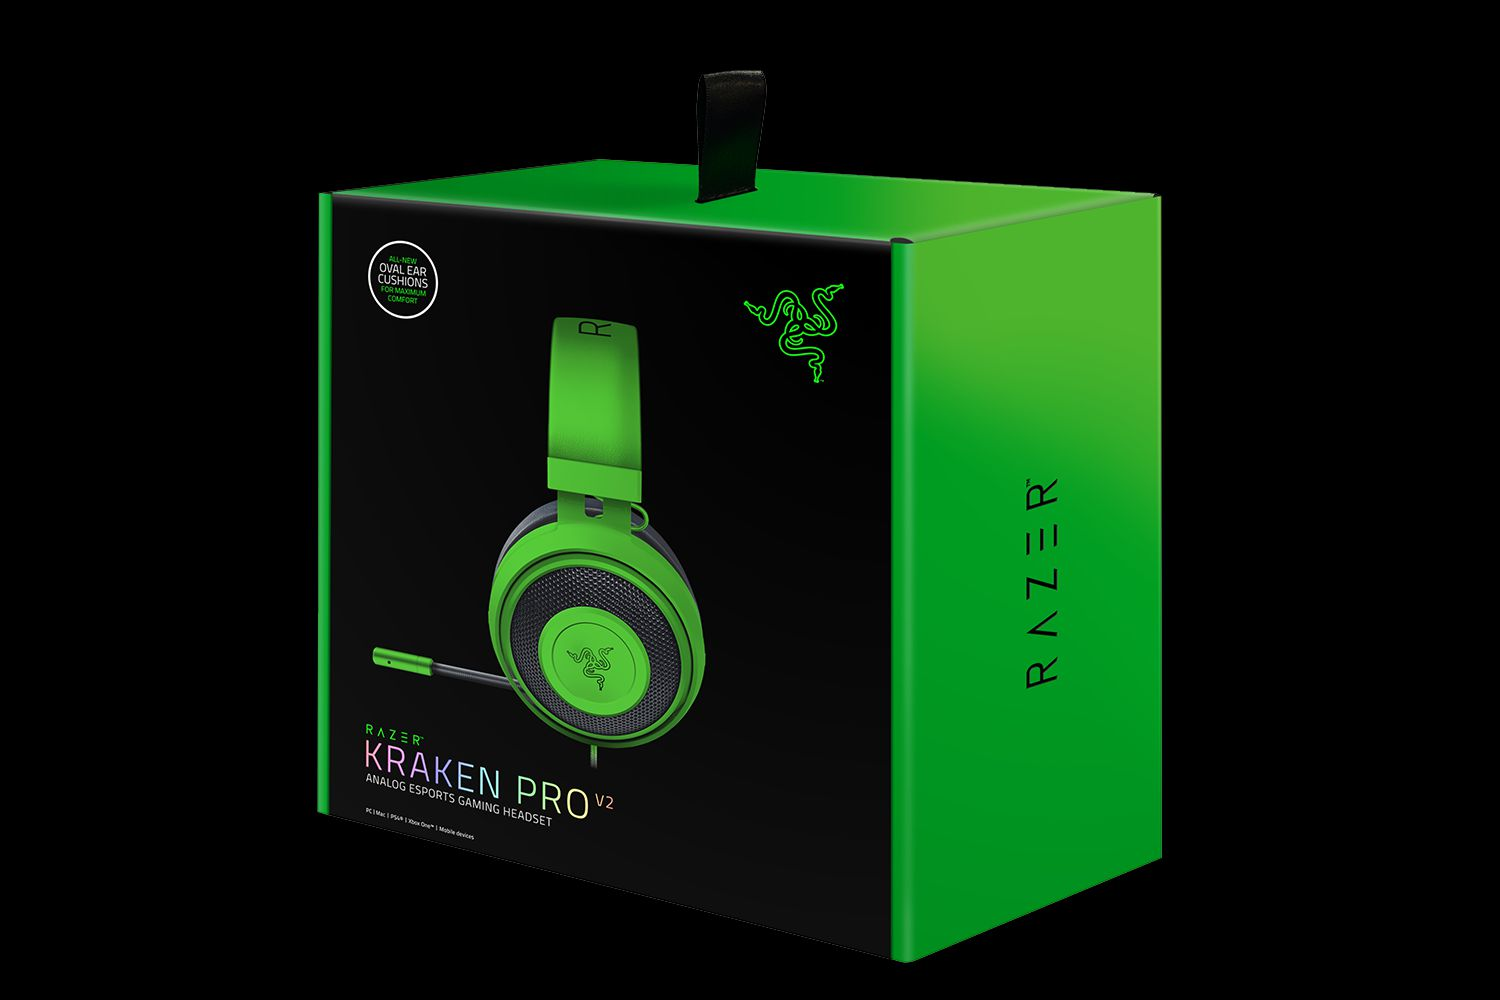 07f6a3ebc5378a12264535234c7951cf green 05 razer kraken pro v2 gaming headset for esports pros razer kraken pro wiring diagram at gsmx.co